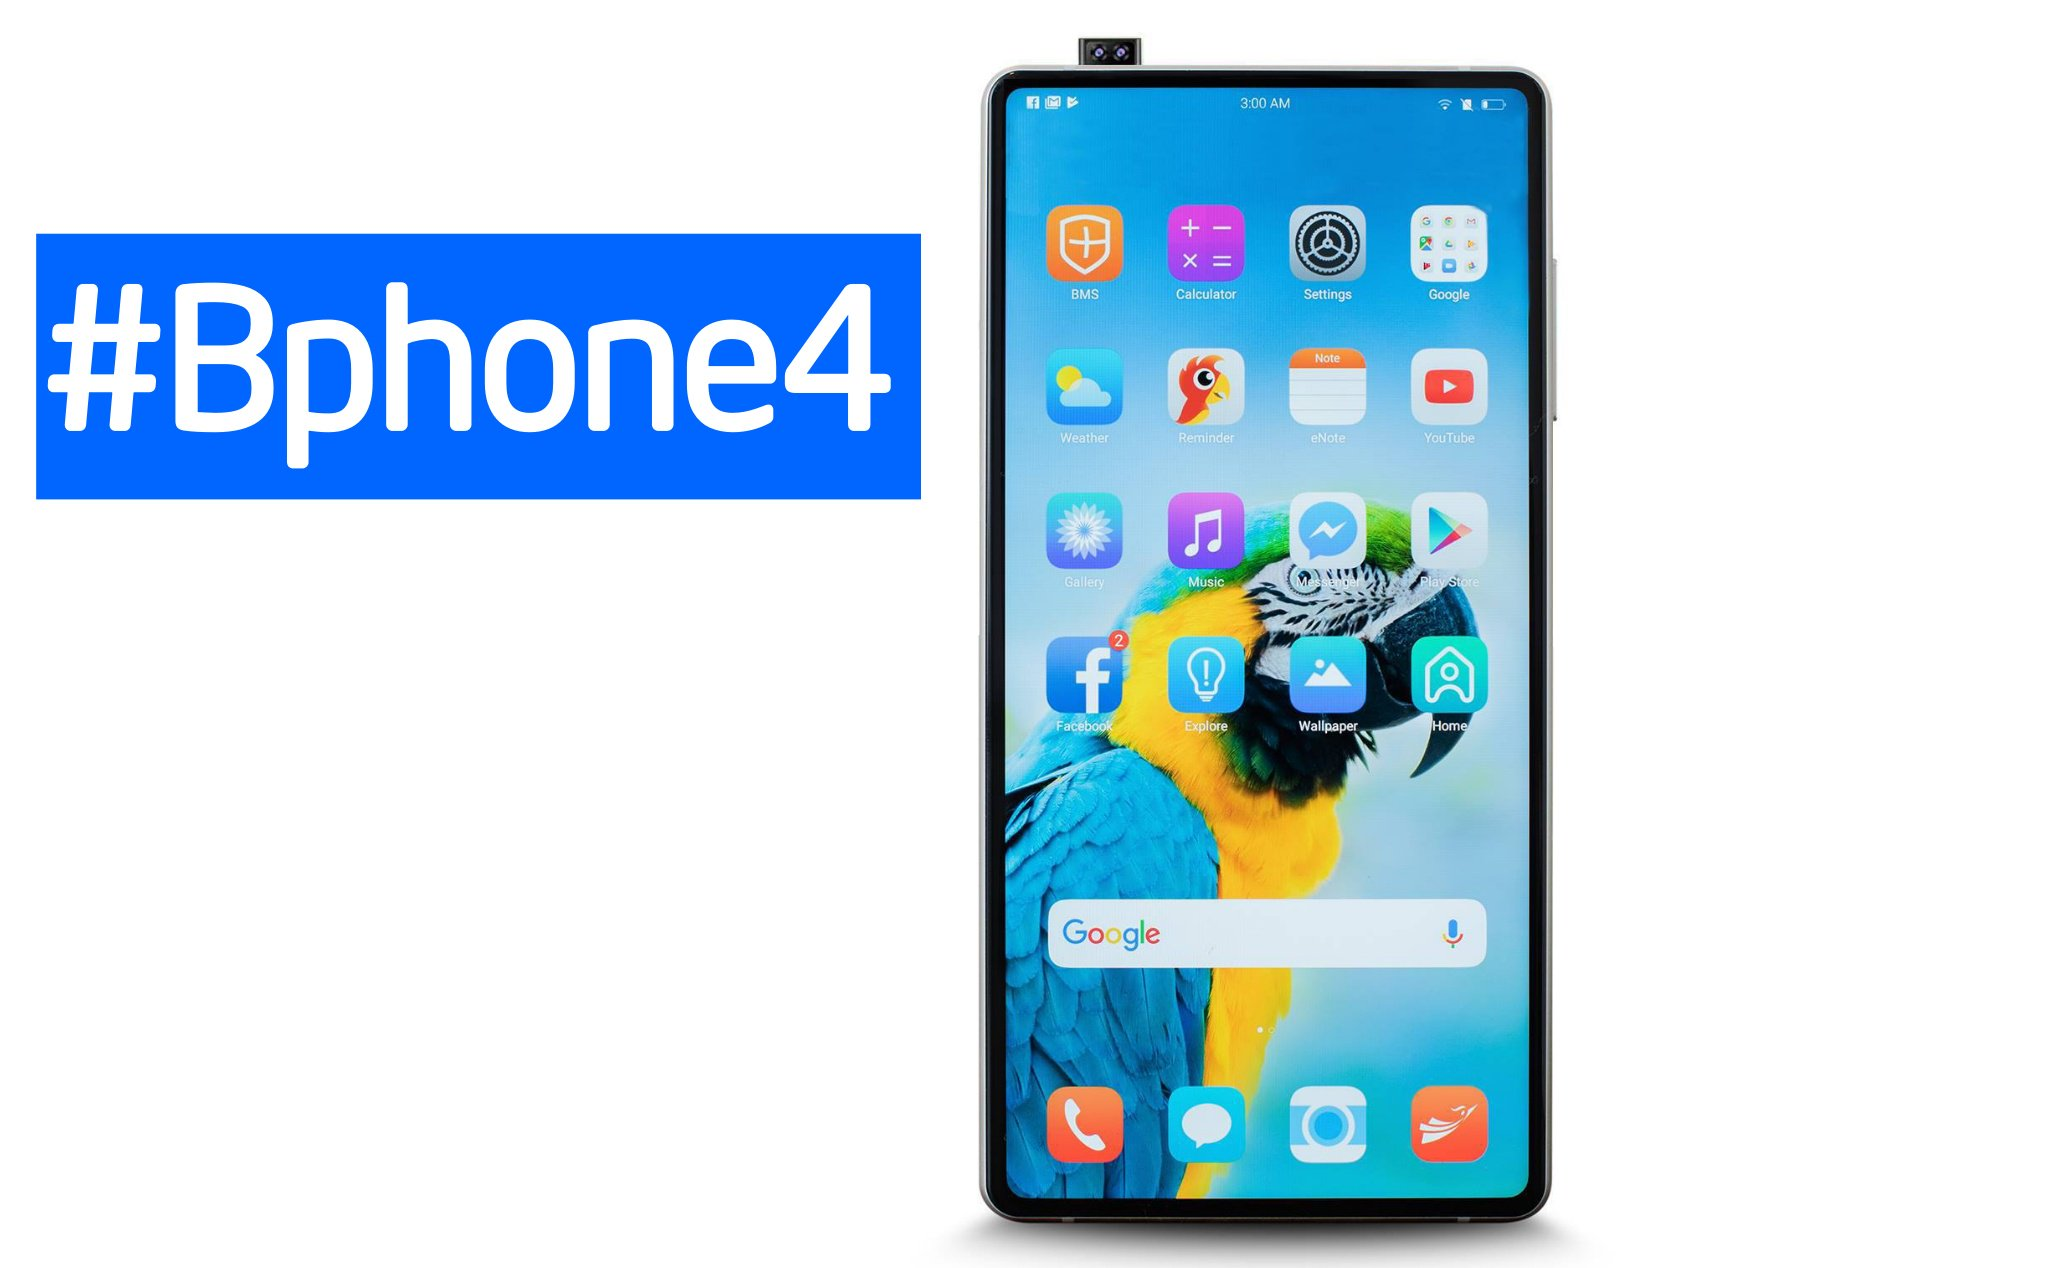 What about Bphone4 like this?